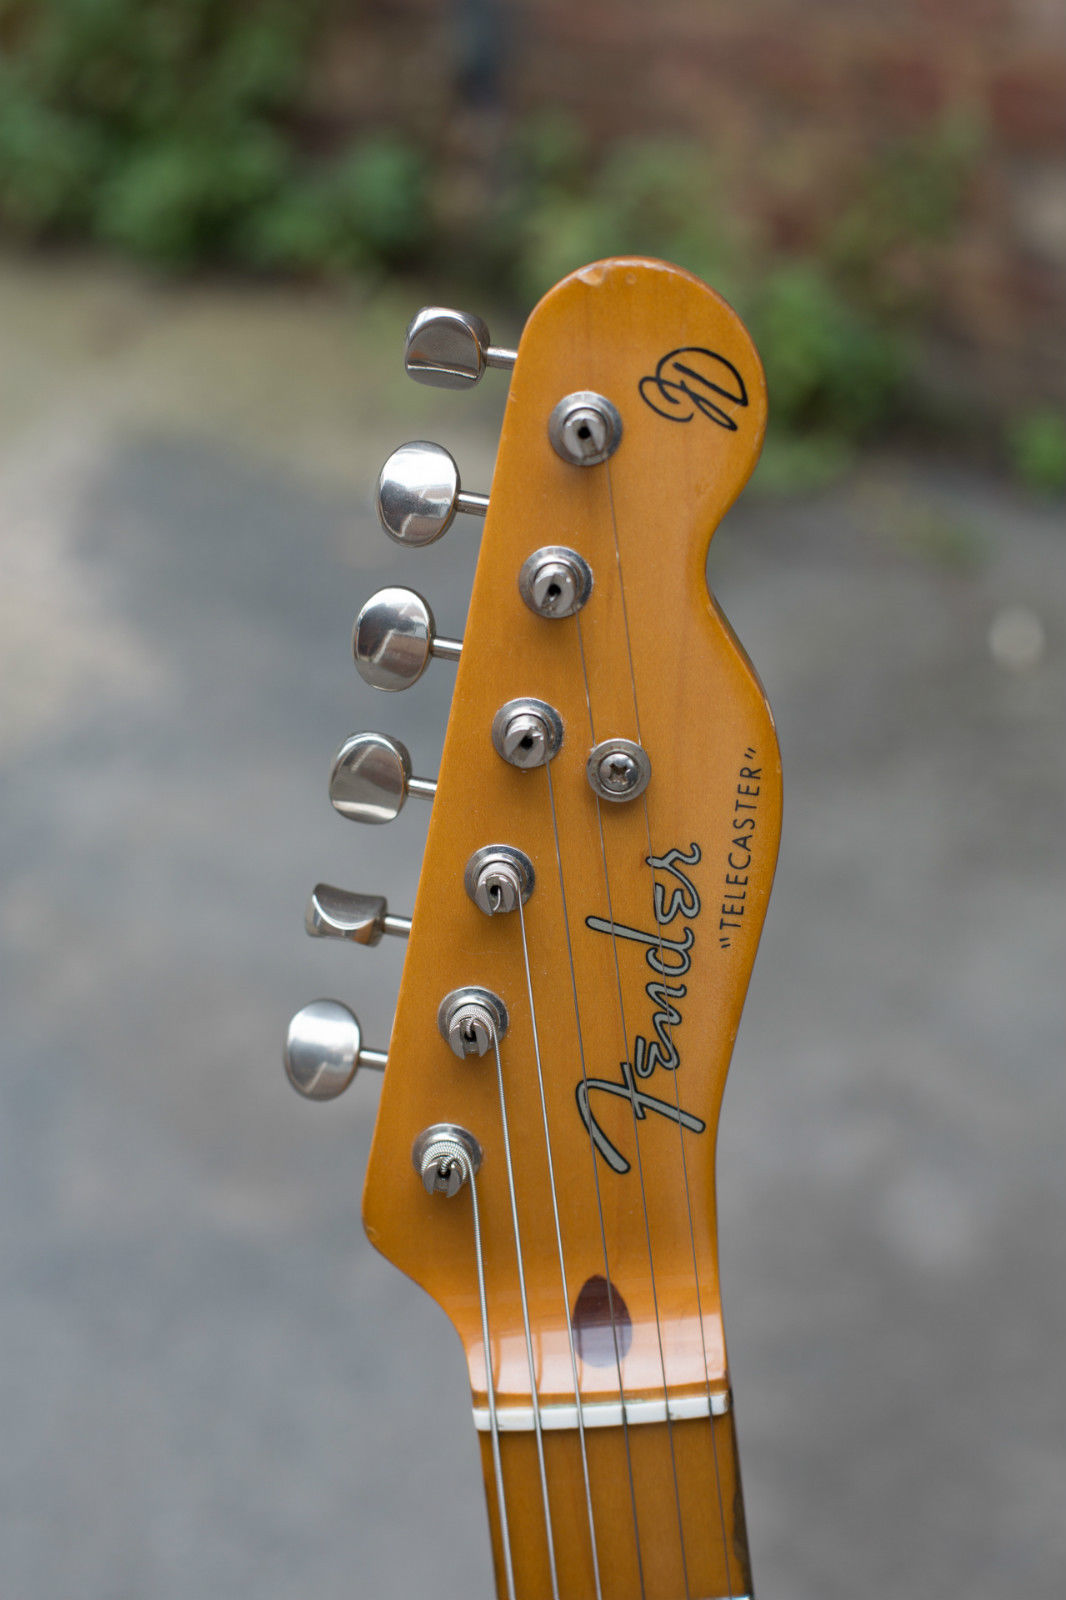 Fender Jerry Donahue Telecaster Japan Custom Shop Pickups Guitar Sale On Texas Special Wiring